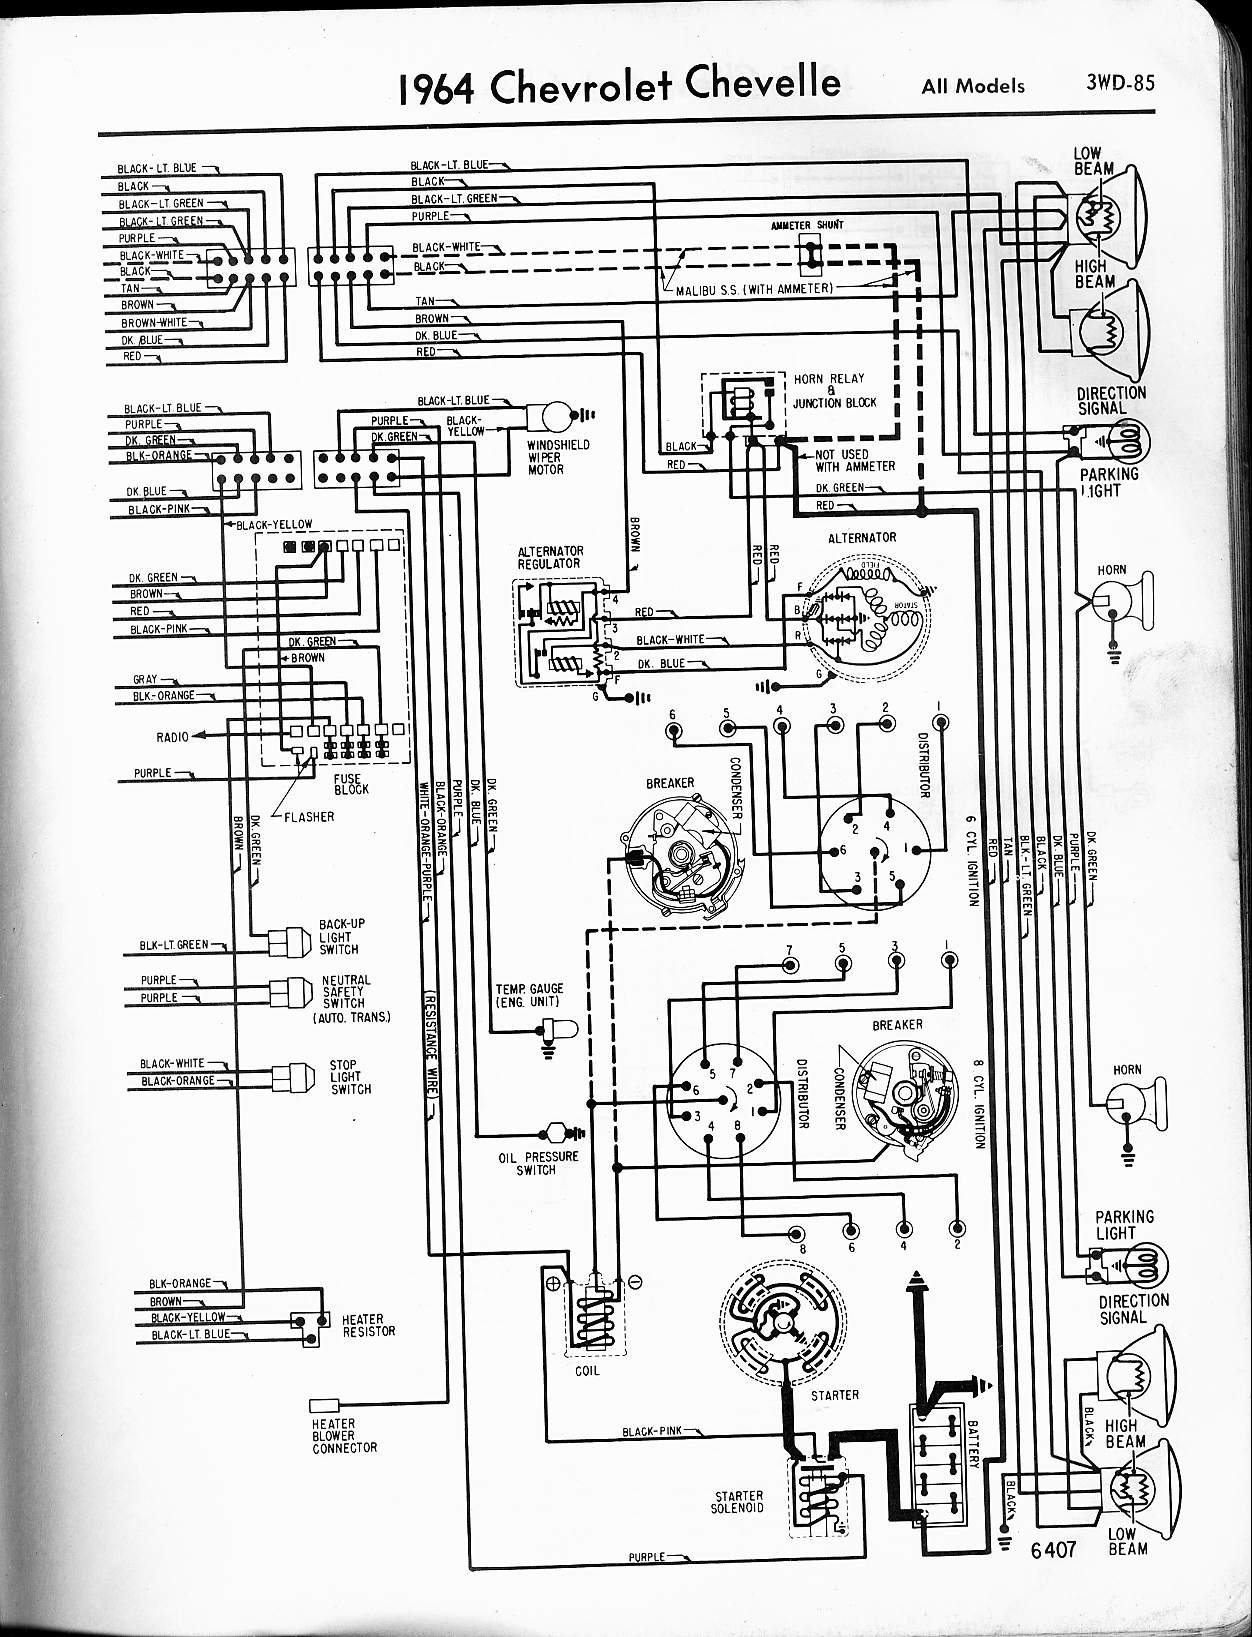 64 Chevy Wiring Diagram - Wiring Library